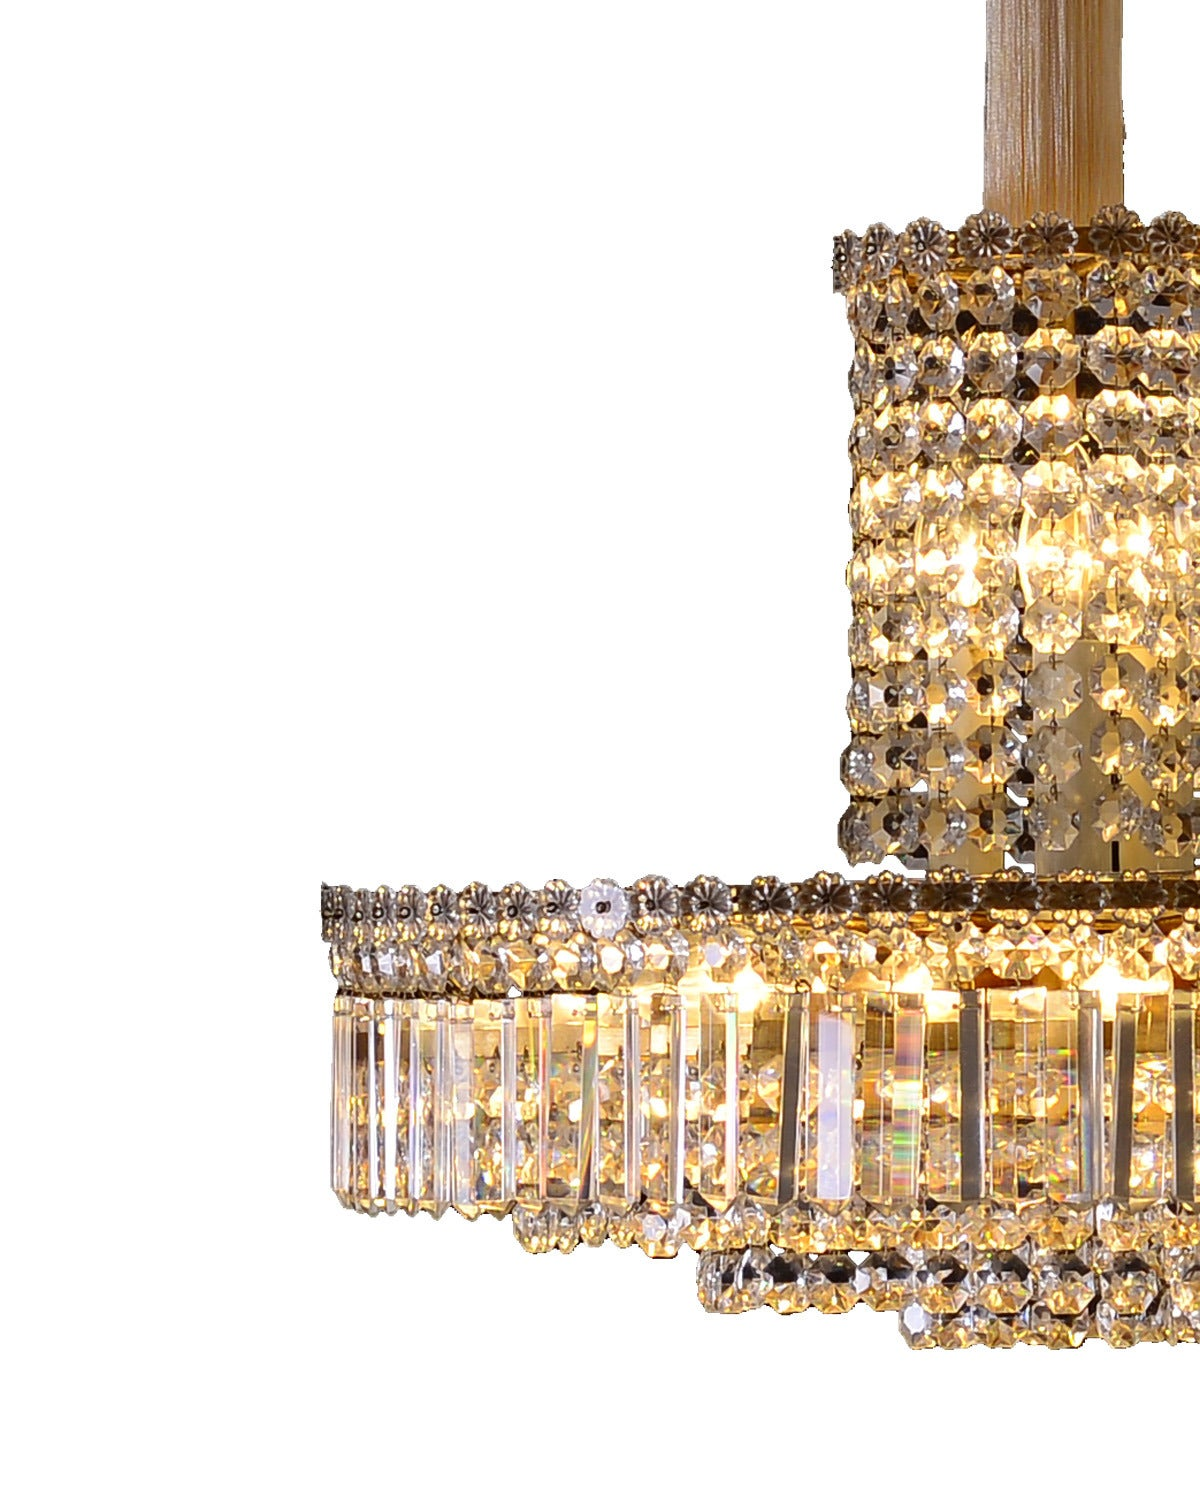 Original Elegant Mid-Century Modern Bakalowits Chandelier from the 1960s For Sale 1